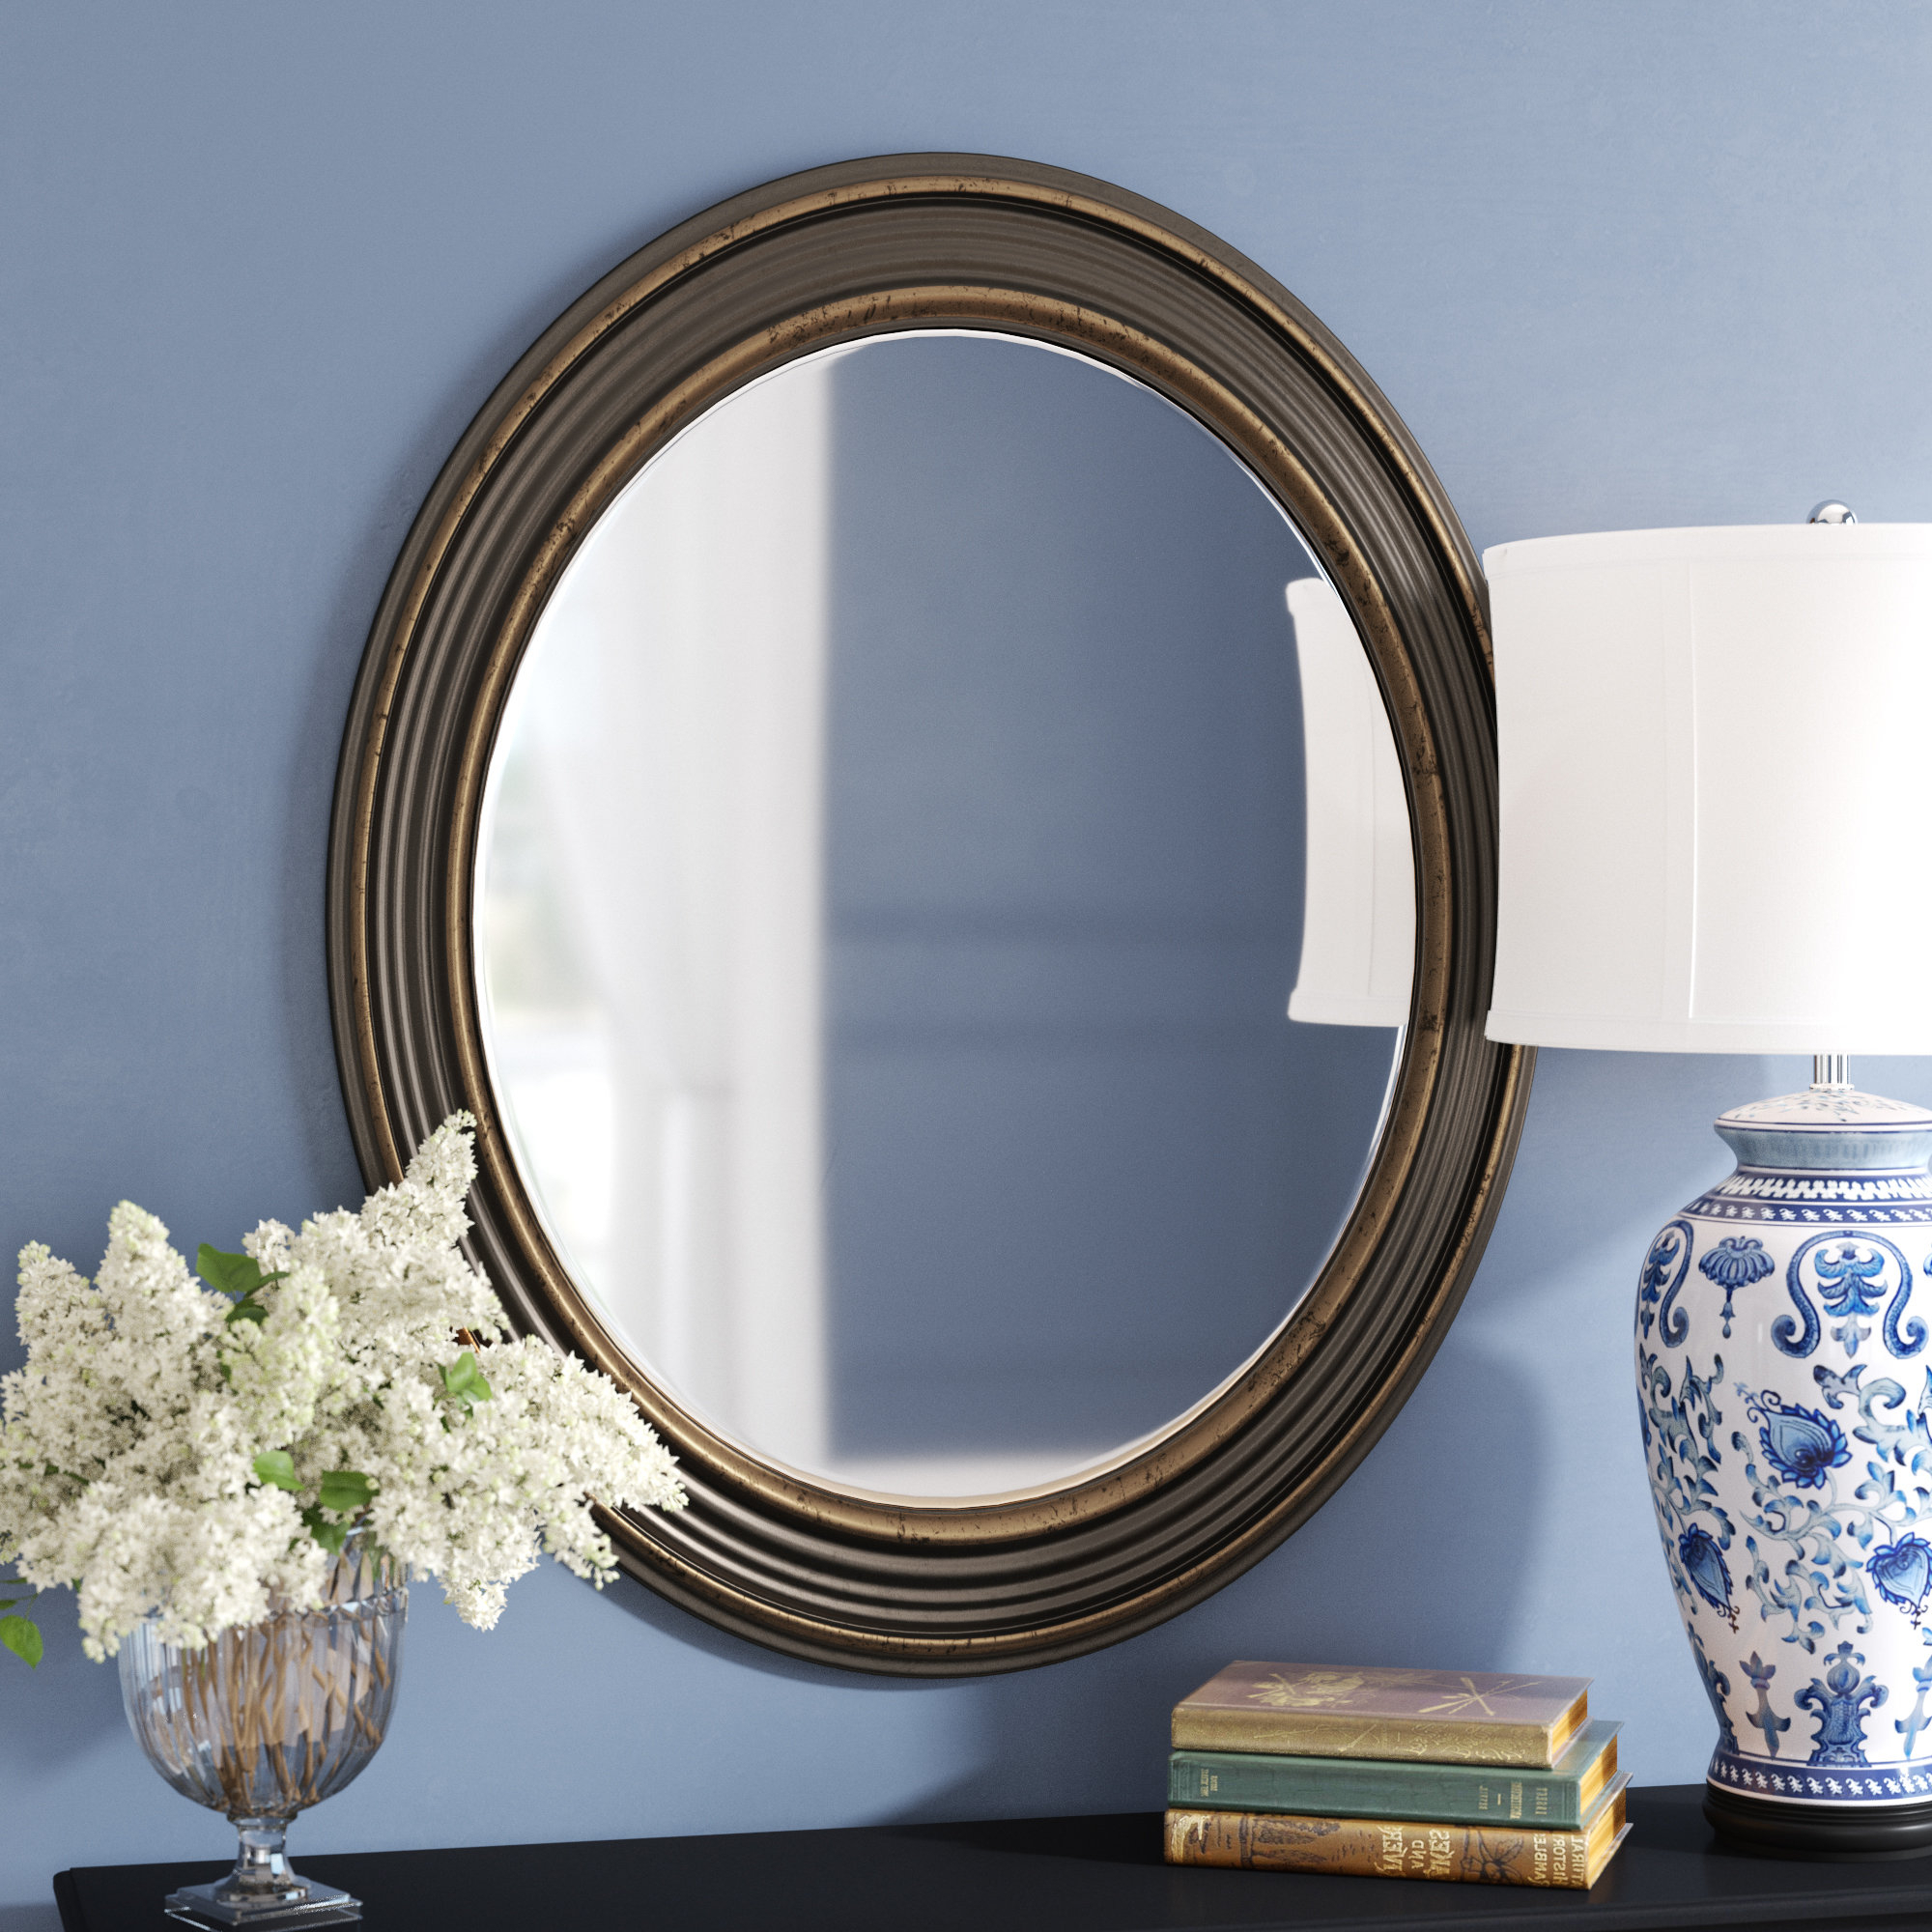 Burnes Oval Traditional Wall Mirror Intended For 2019 Glen View Beaded Oval Traditional Accent Mirrors (View 3 of 20)